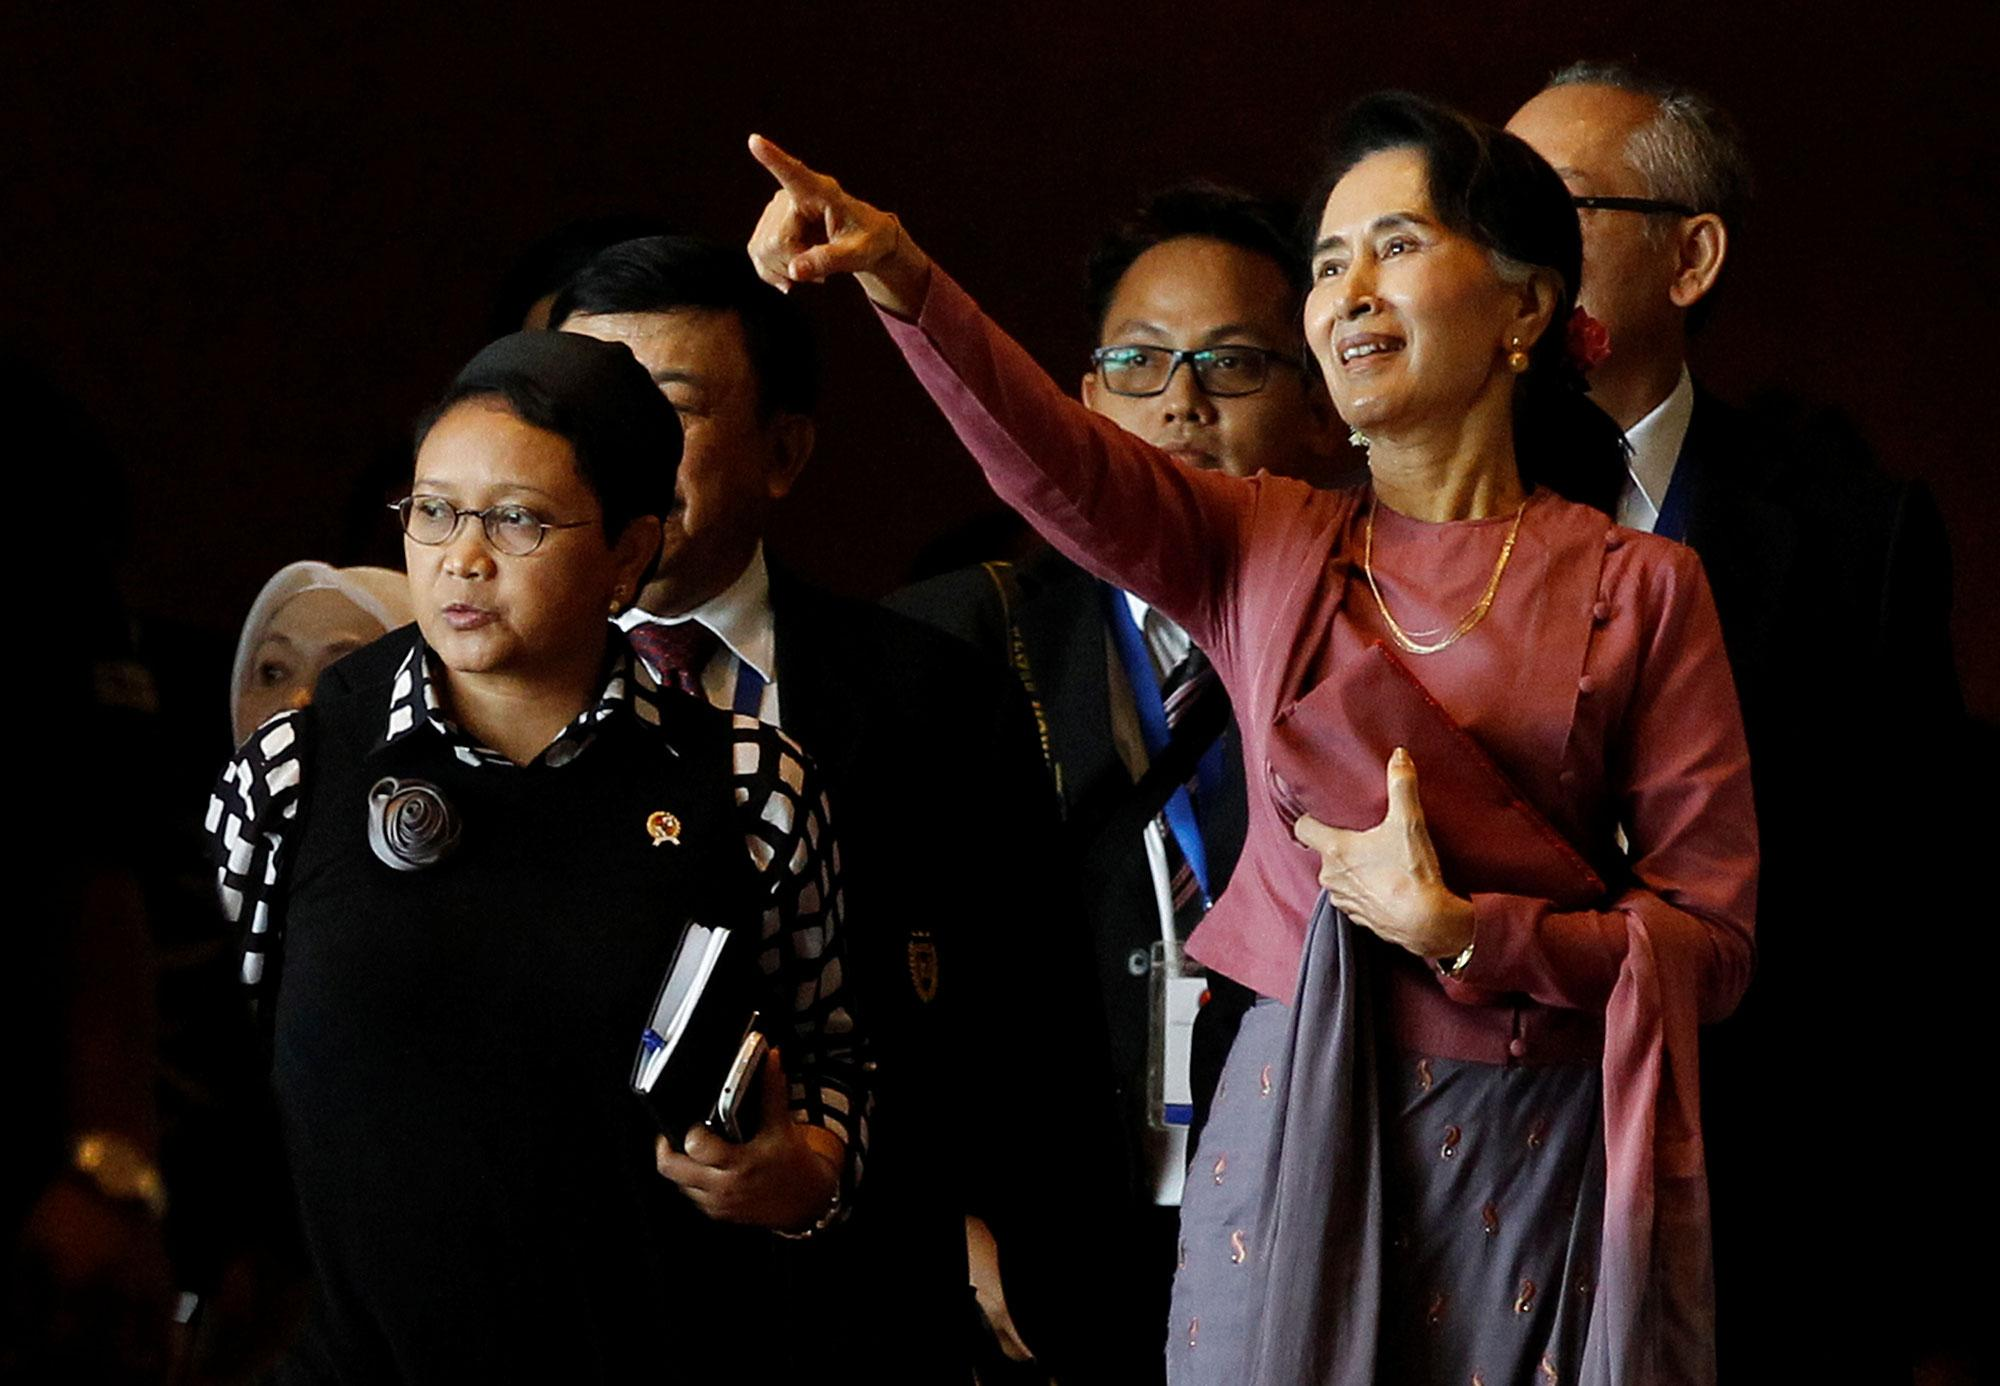 <p>Indonesia Foreign Minister Retno Marsudi and Myanmar State Counsellor Aung San Suu Kyi walk after they attended ASEAN Foreign Minister Meeting on Rohingya issue in Sedona hotel at Yangon, Myanmar on Dec.19, 2016. (Photo: Soe Zeya/Reuters) </p>